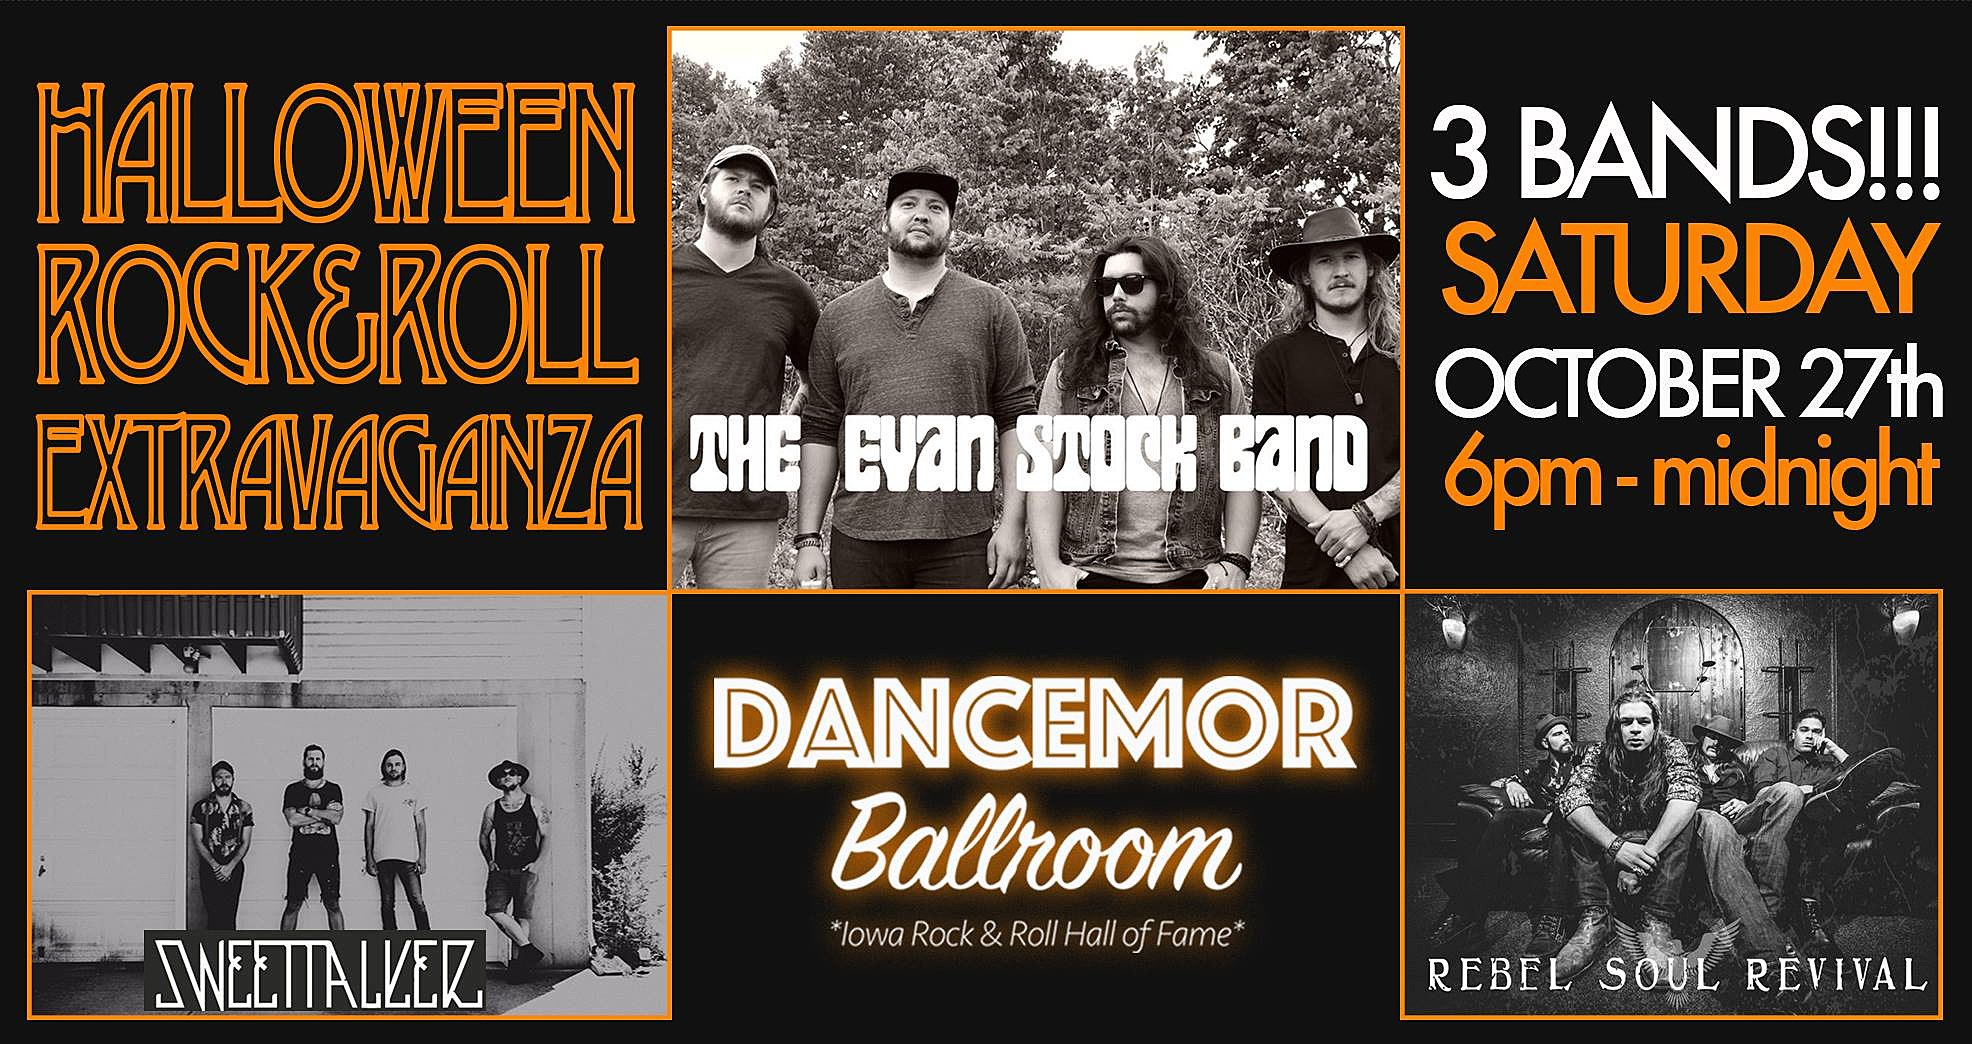 halloween rock & roll show this saturday in swisher